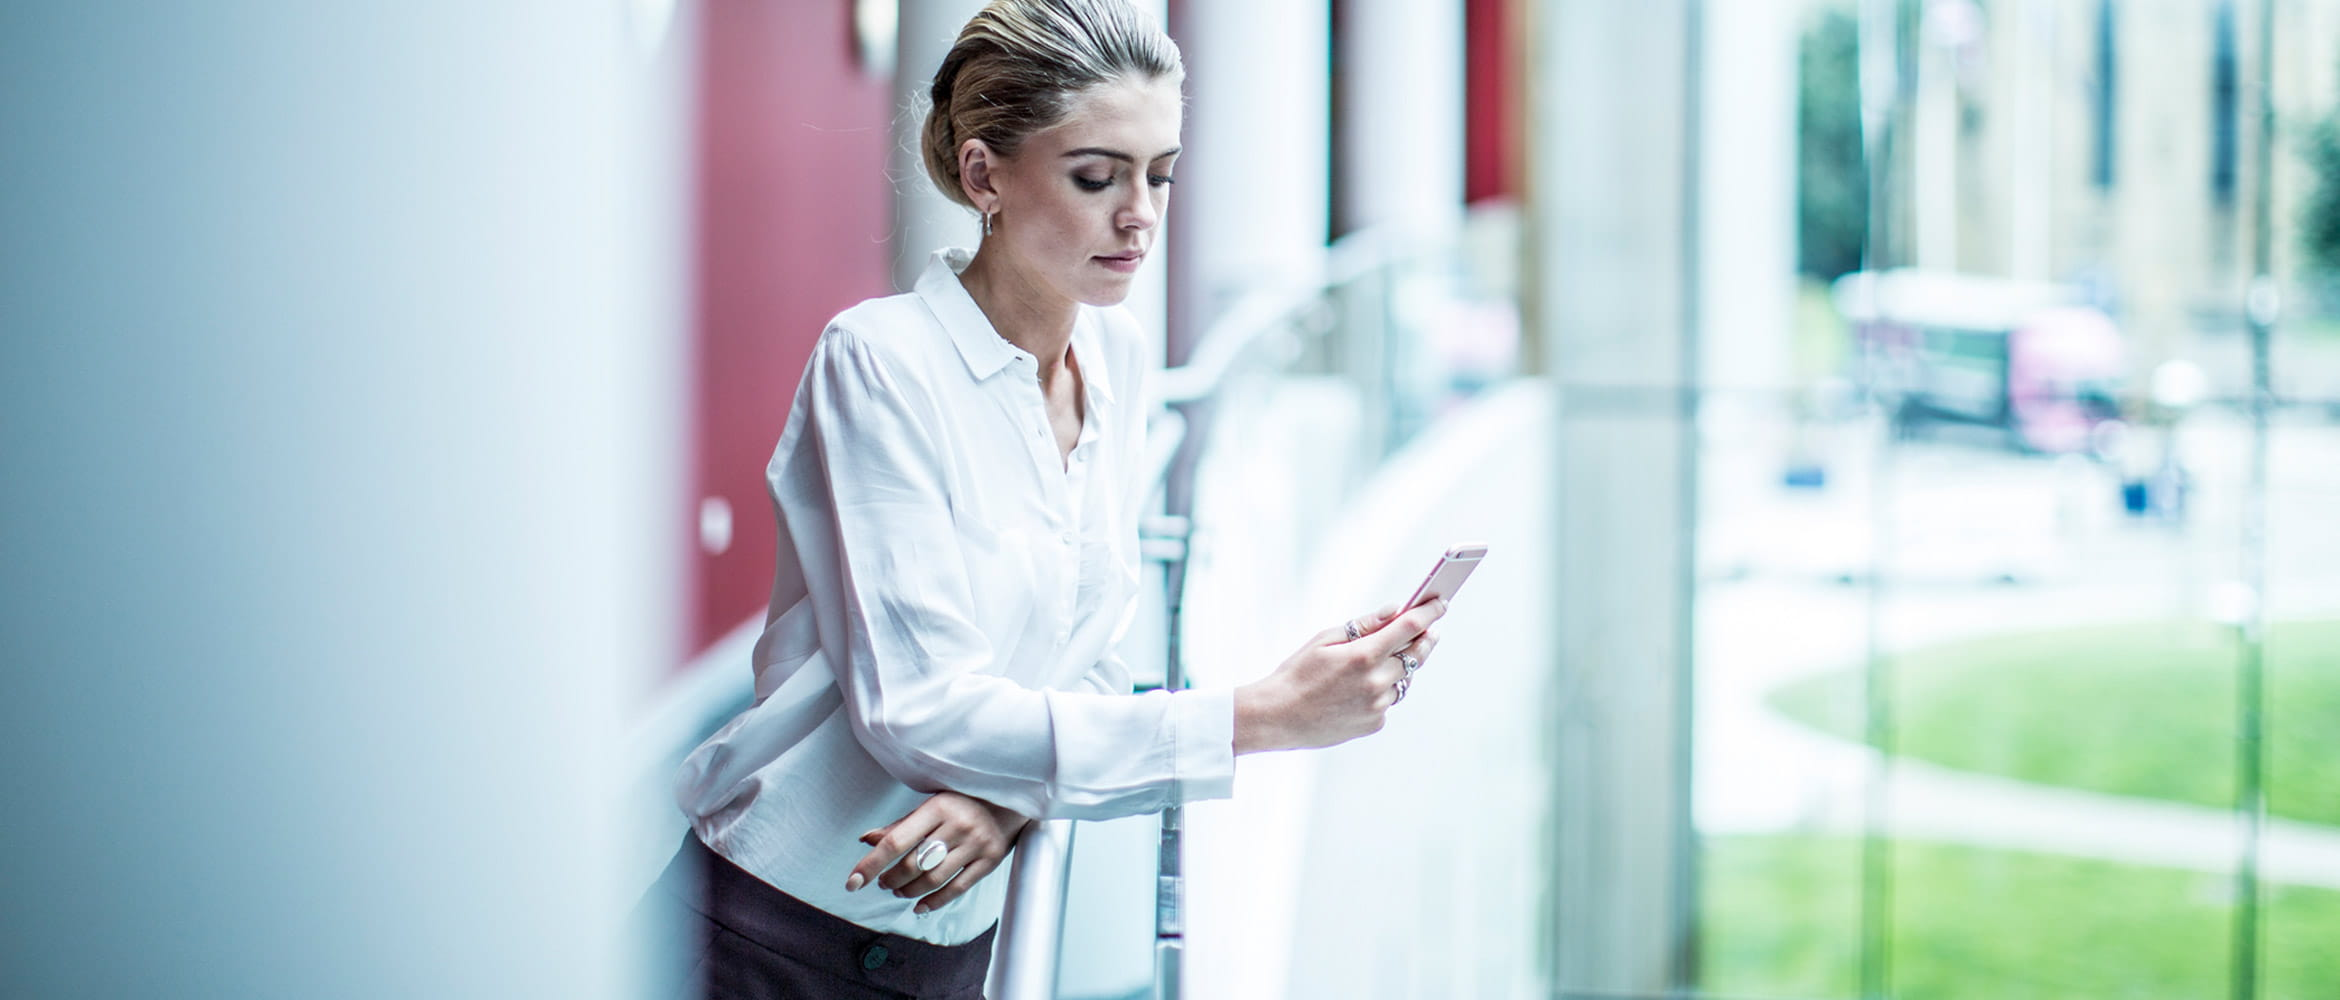 Professionally dressed lady using Brother support center app on her mobile